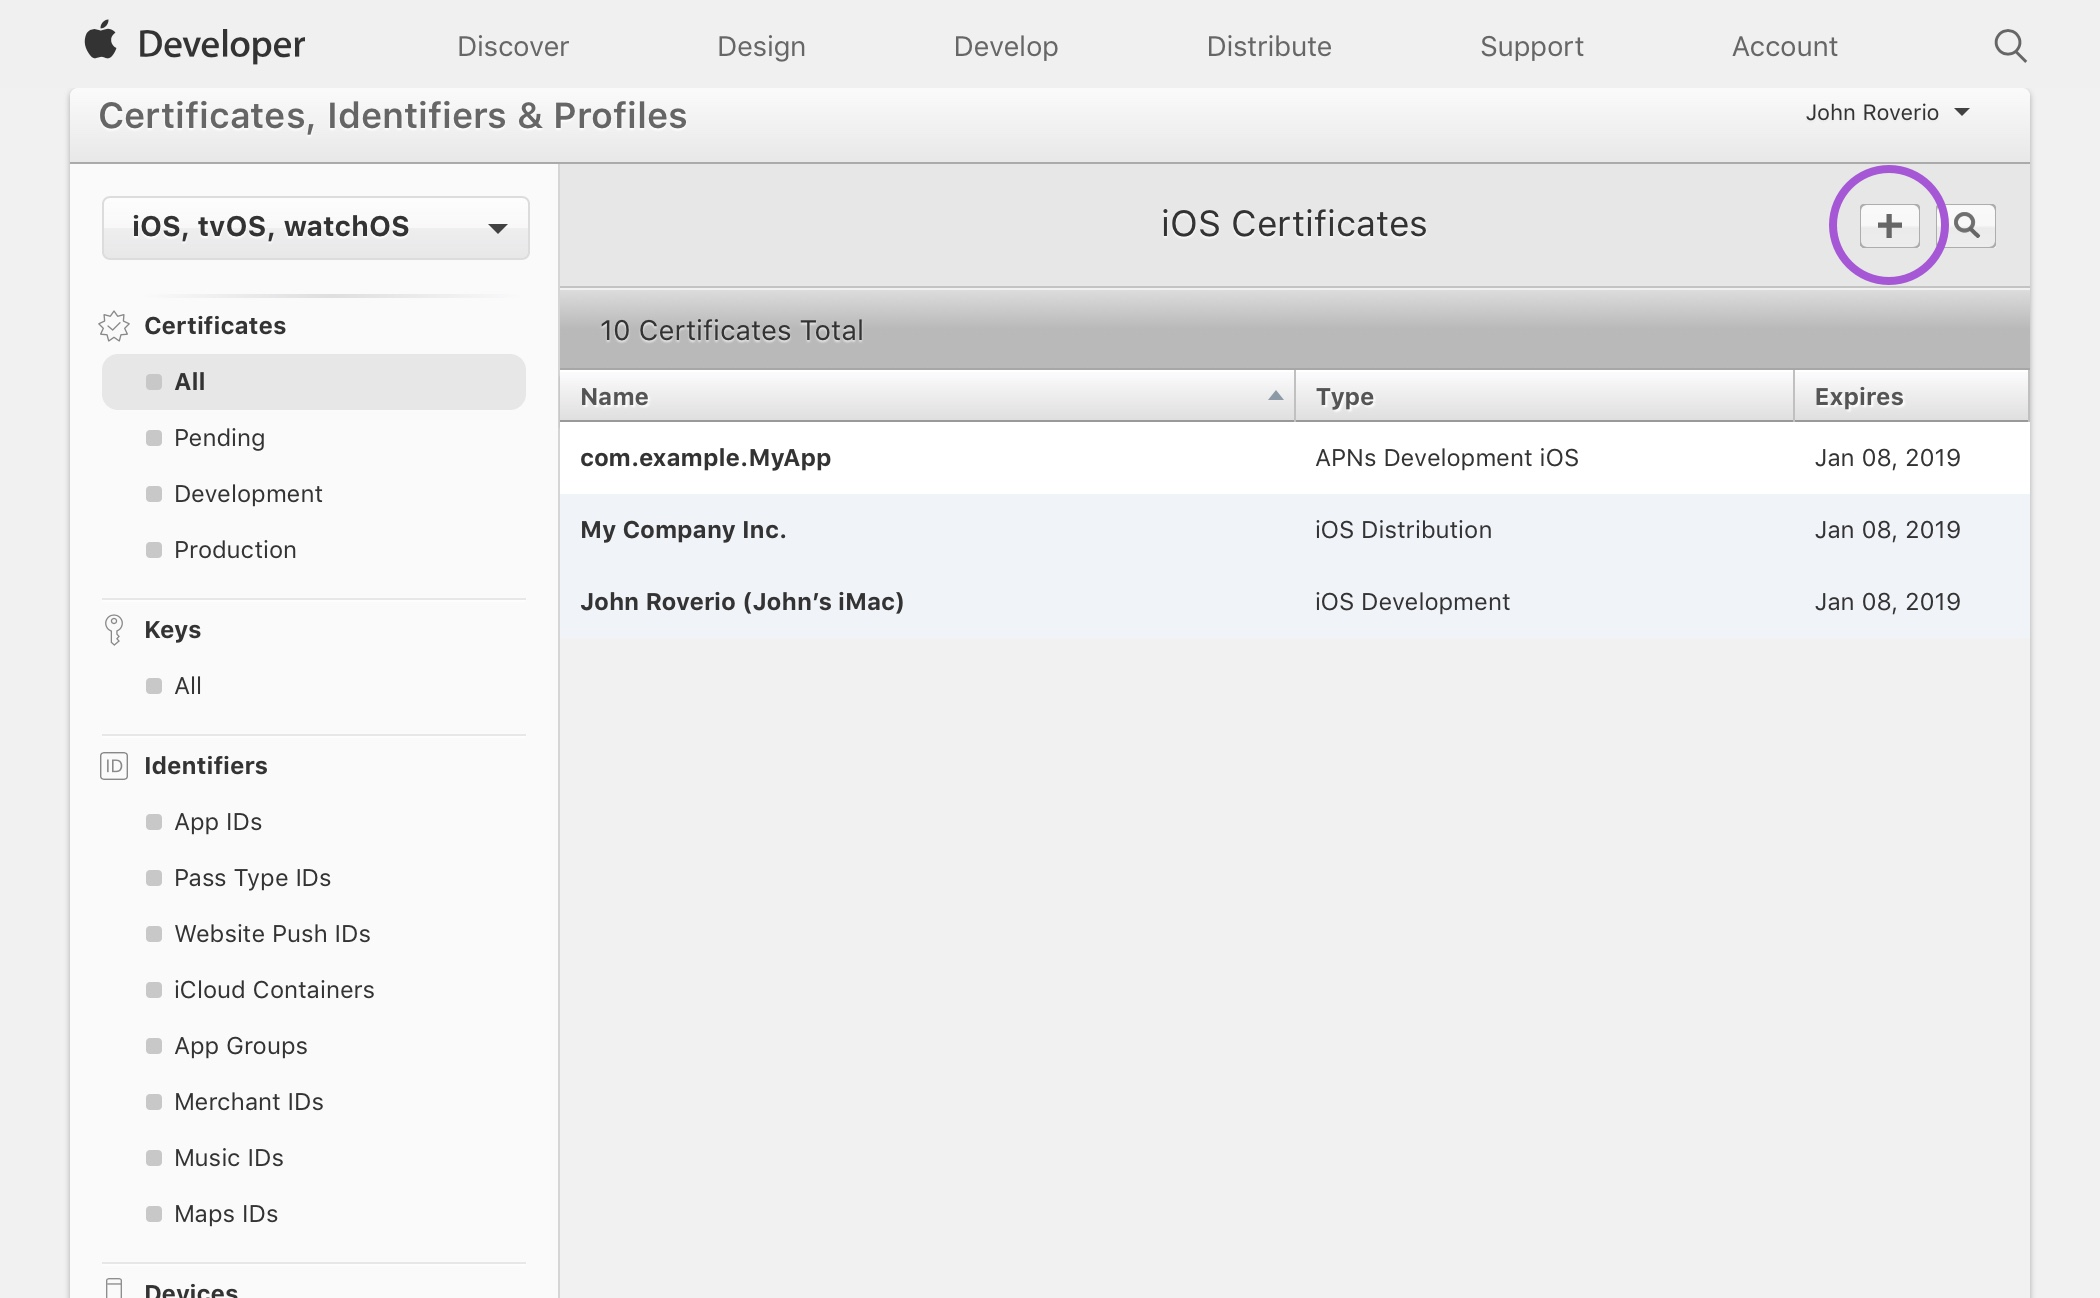 Certificates, Identifiers & Profiles